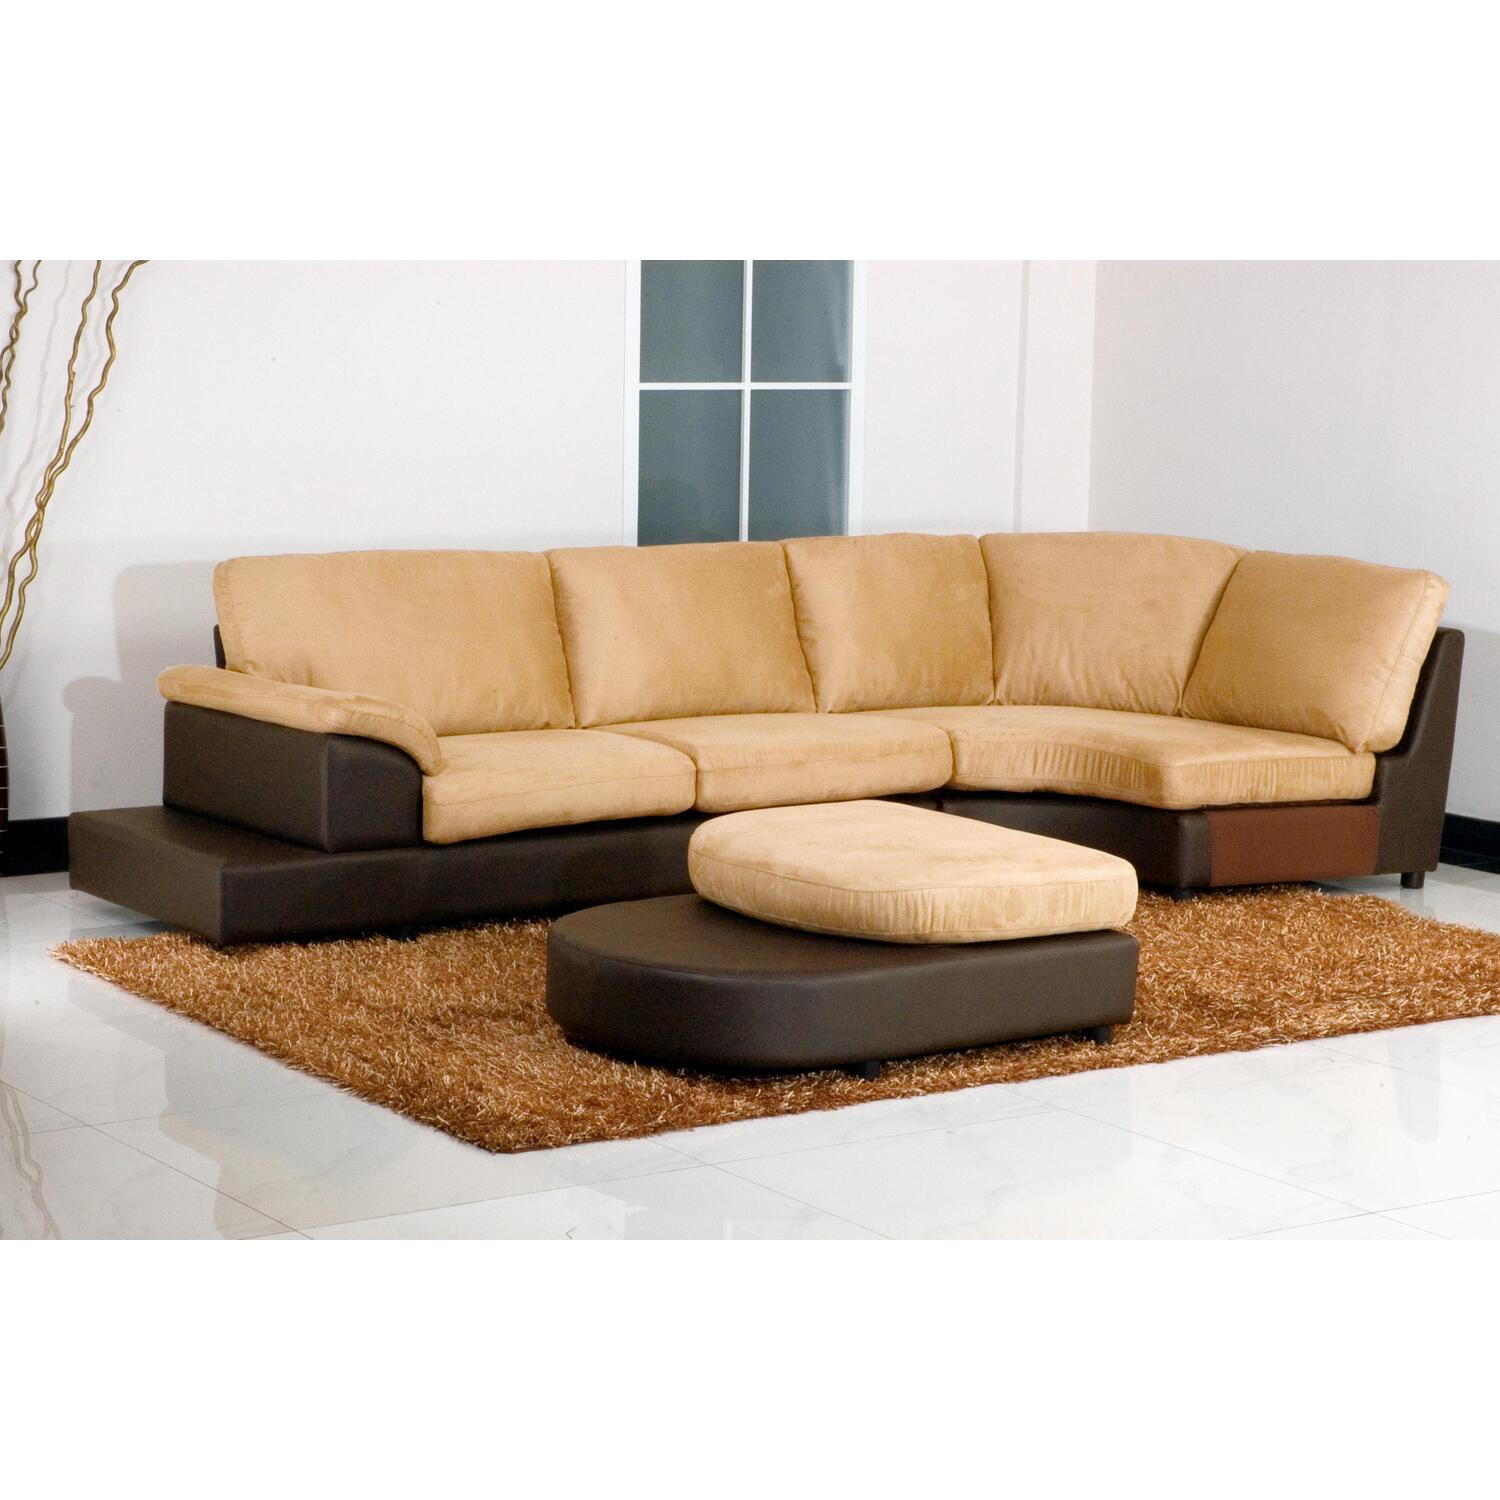 mocha microsuede sectional sofa with ottoman ojcommerce. Black Bedroom Furniture Sets. Home Design Ideas